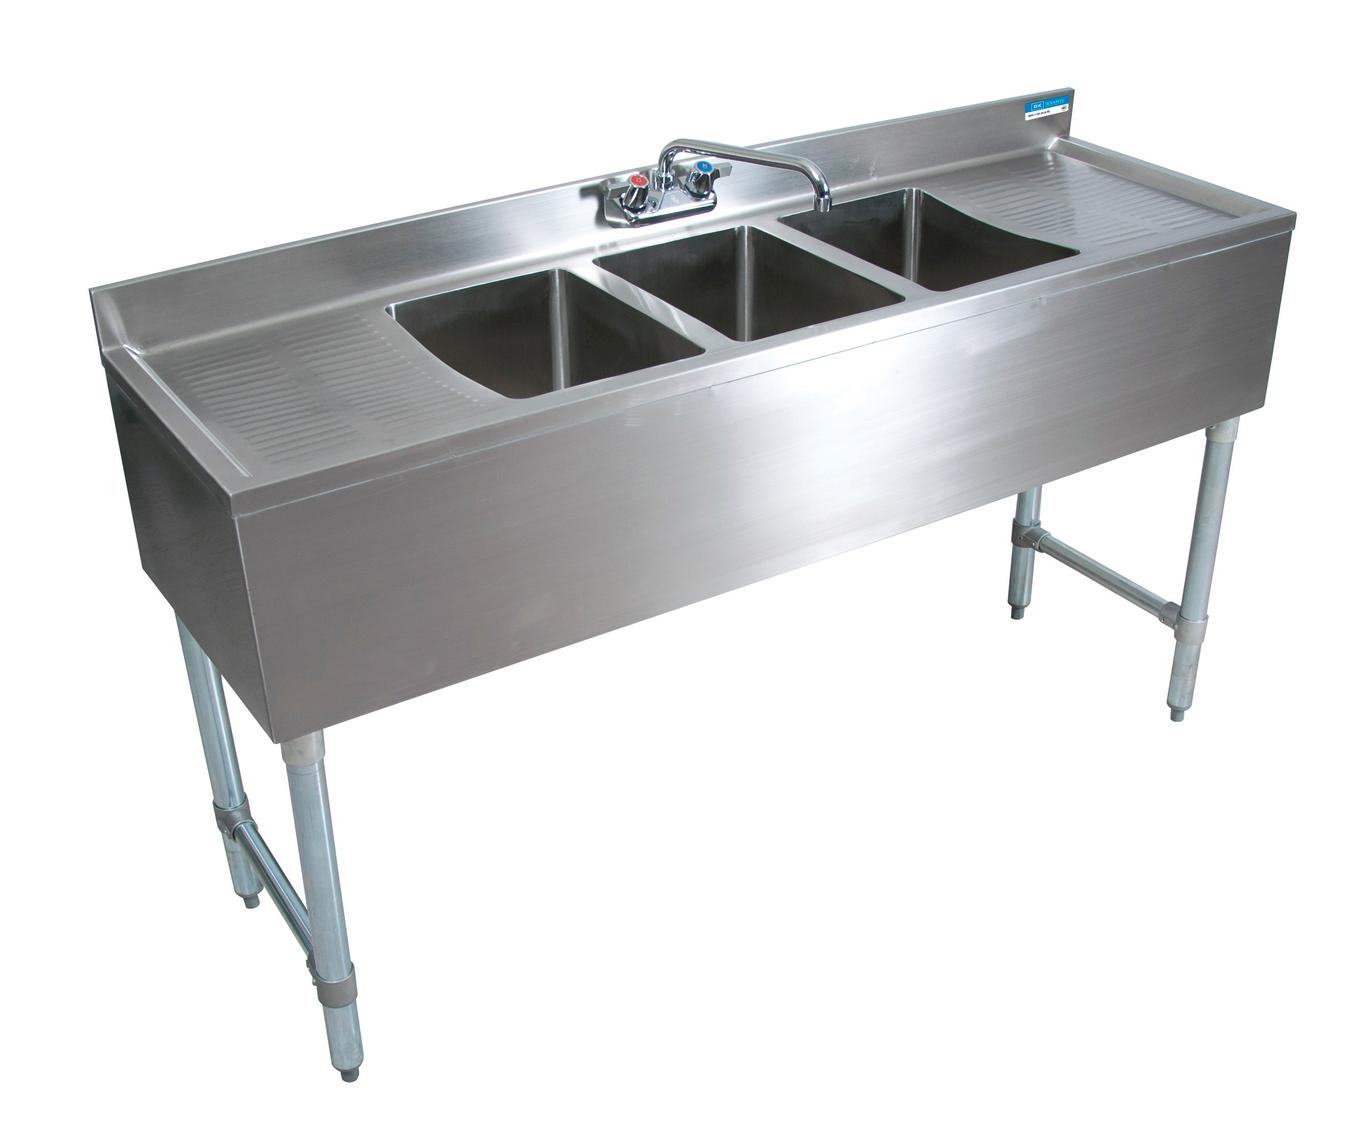 Bk Resources Bkubw 372ts 72 W 3 Compartment Slim Line Underbar Sink W S S Leg